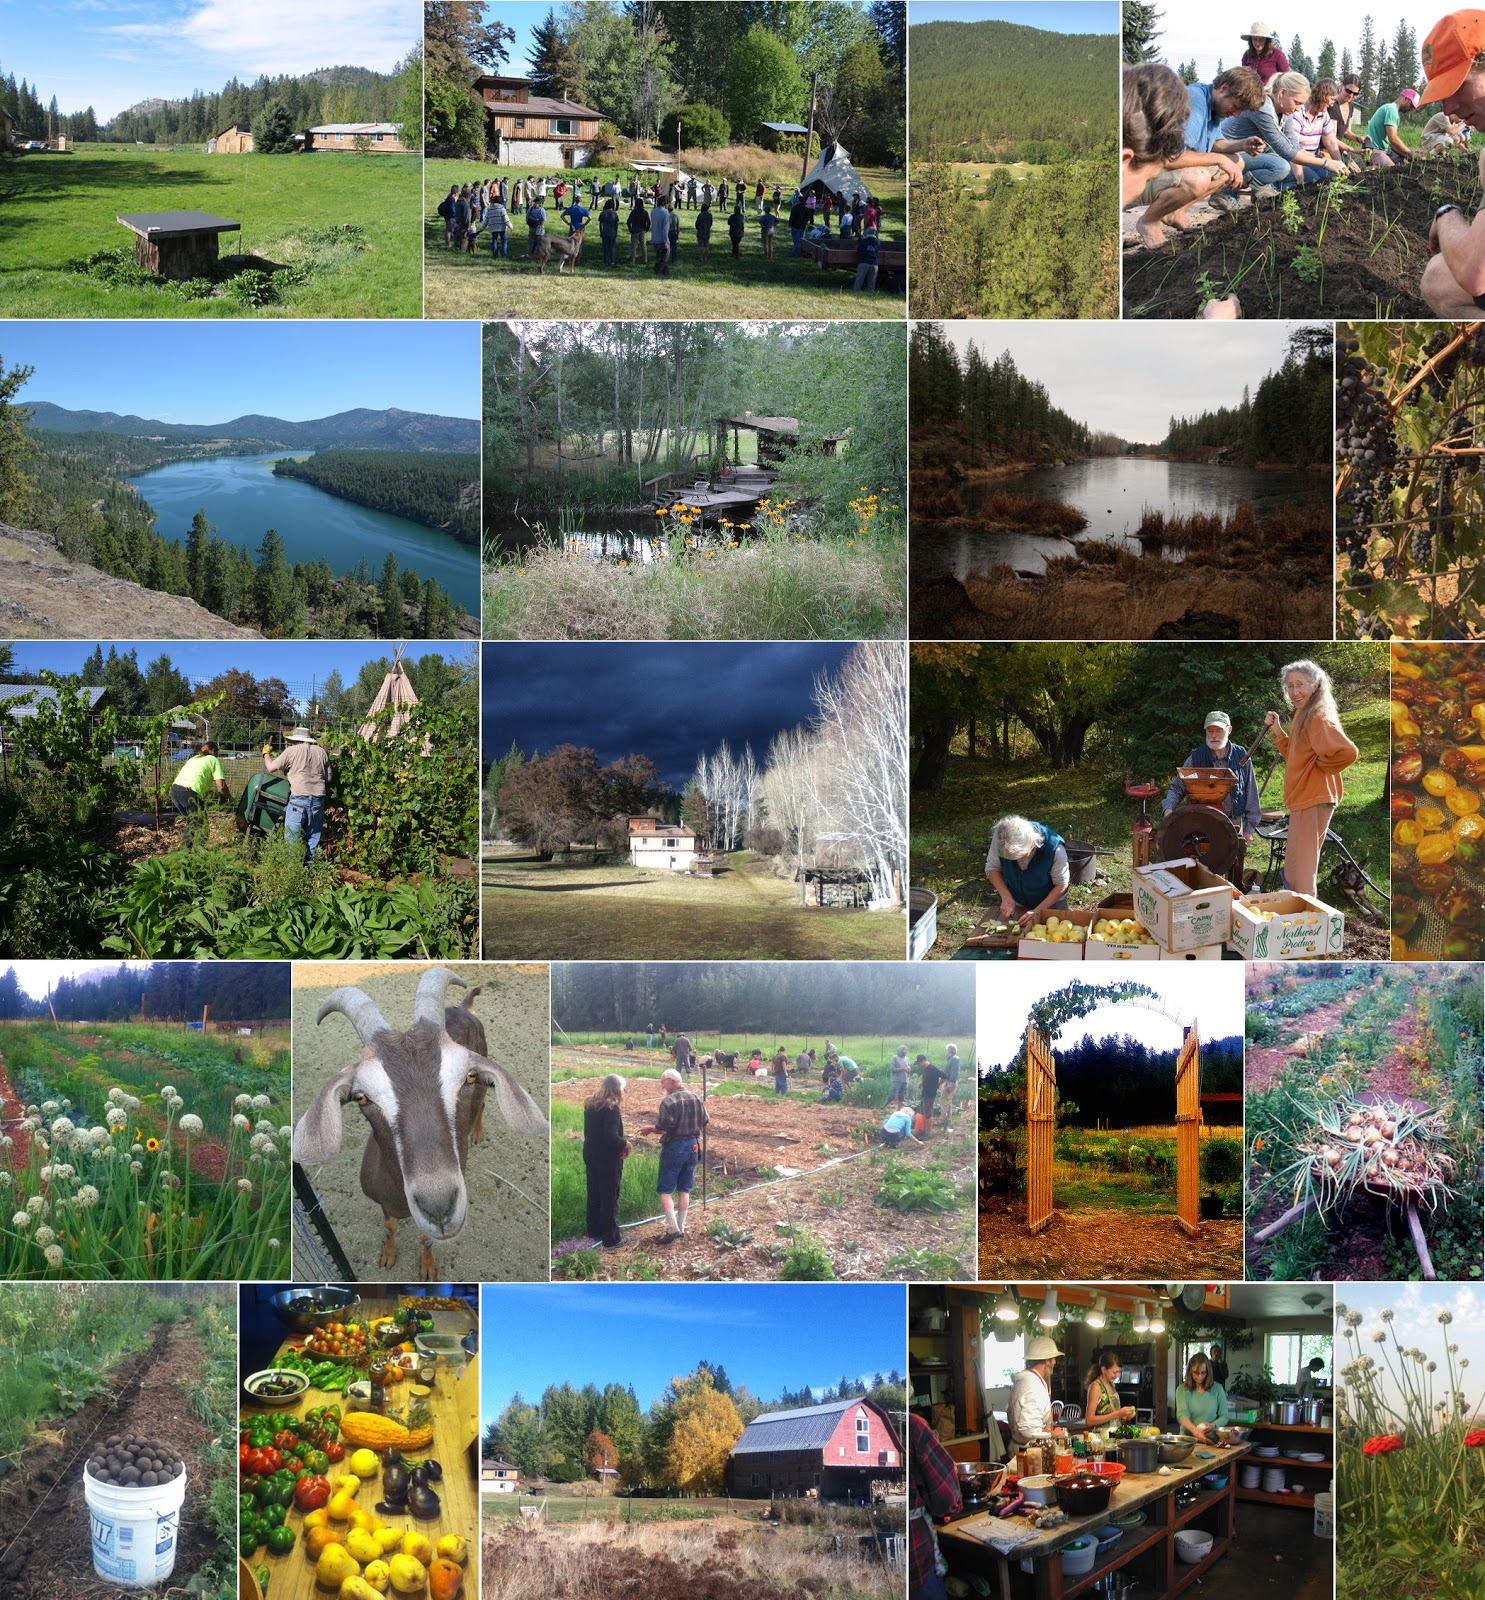 Washington Permaculture